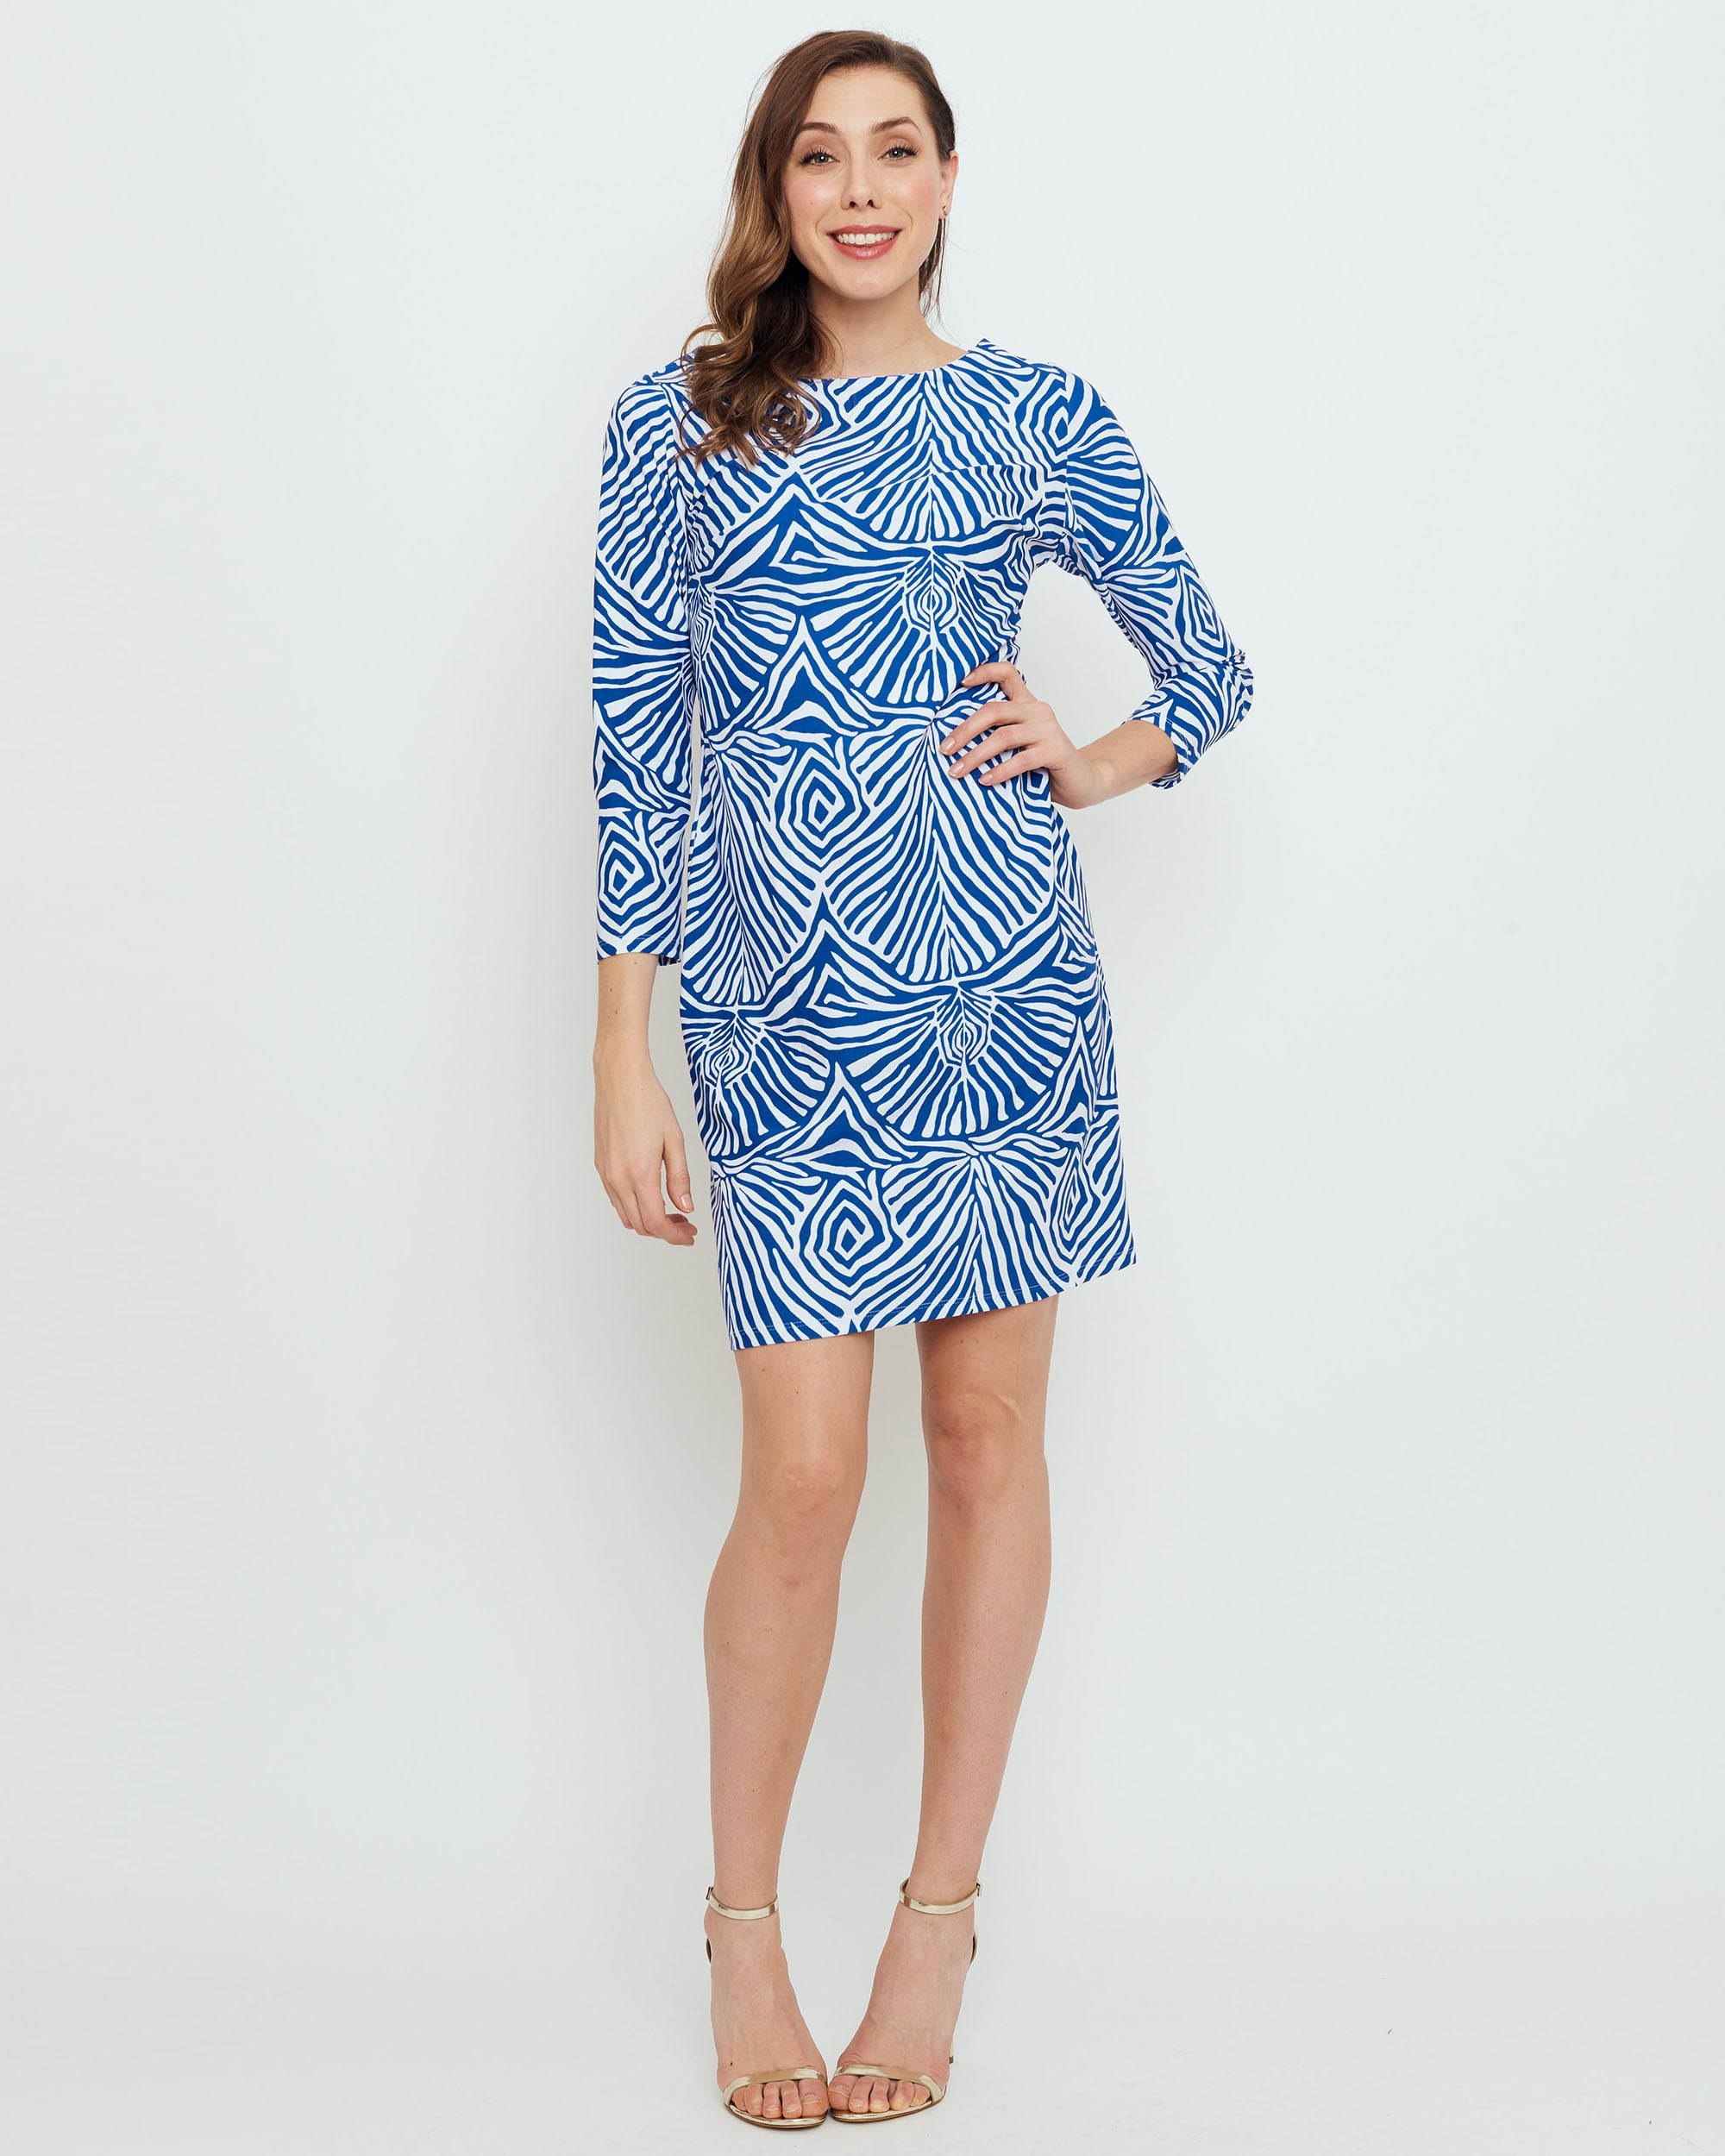 7649c1400205 Adonara 3/4 Sleeve Boatneck Dress in Blue Safari Stripes - BO&NIC